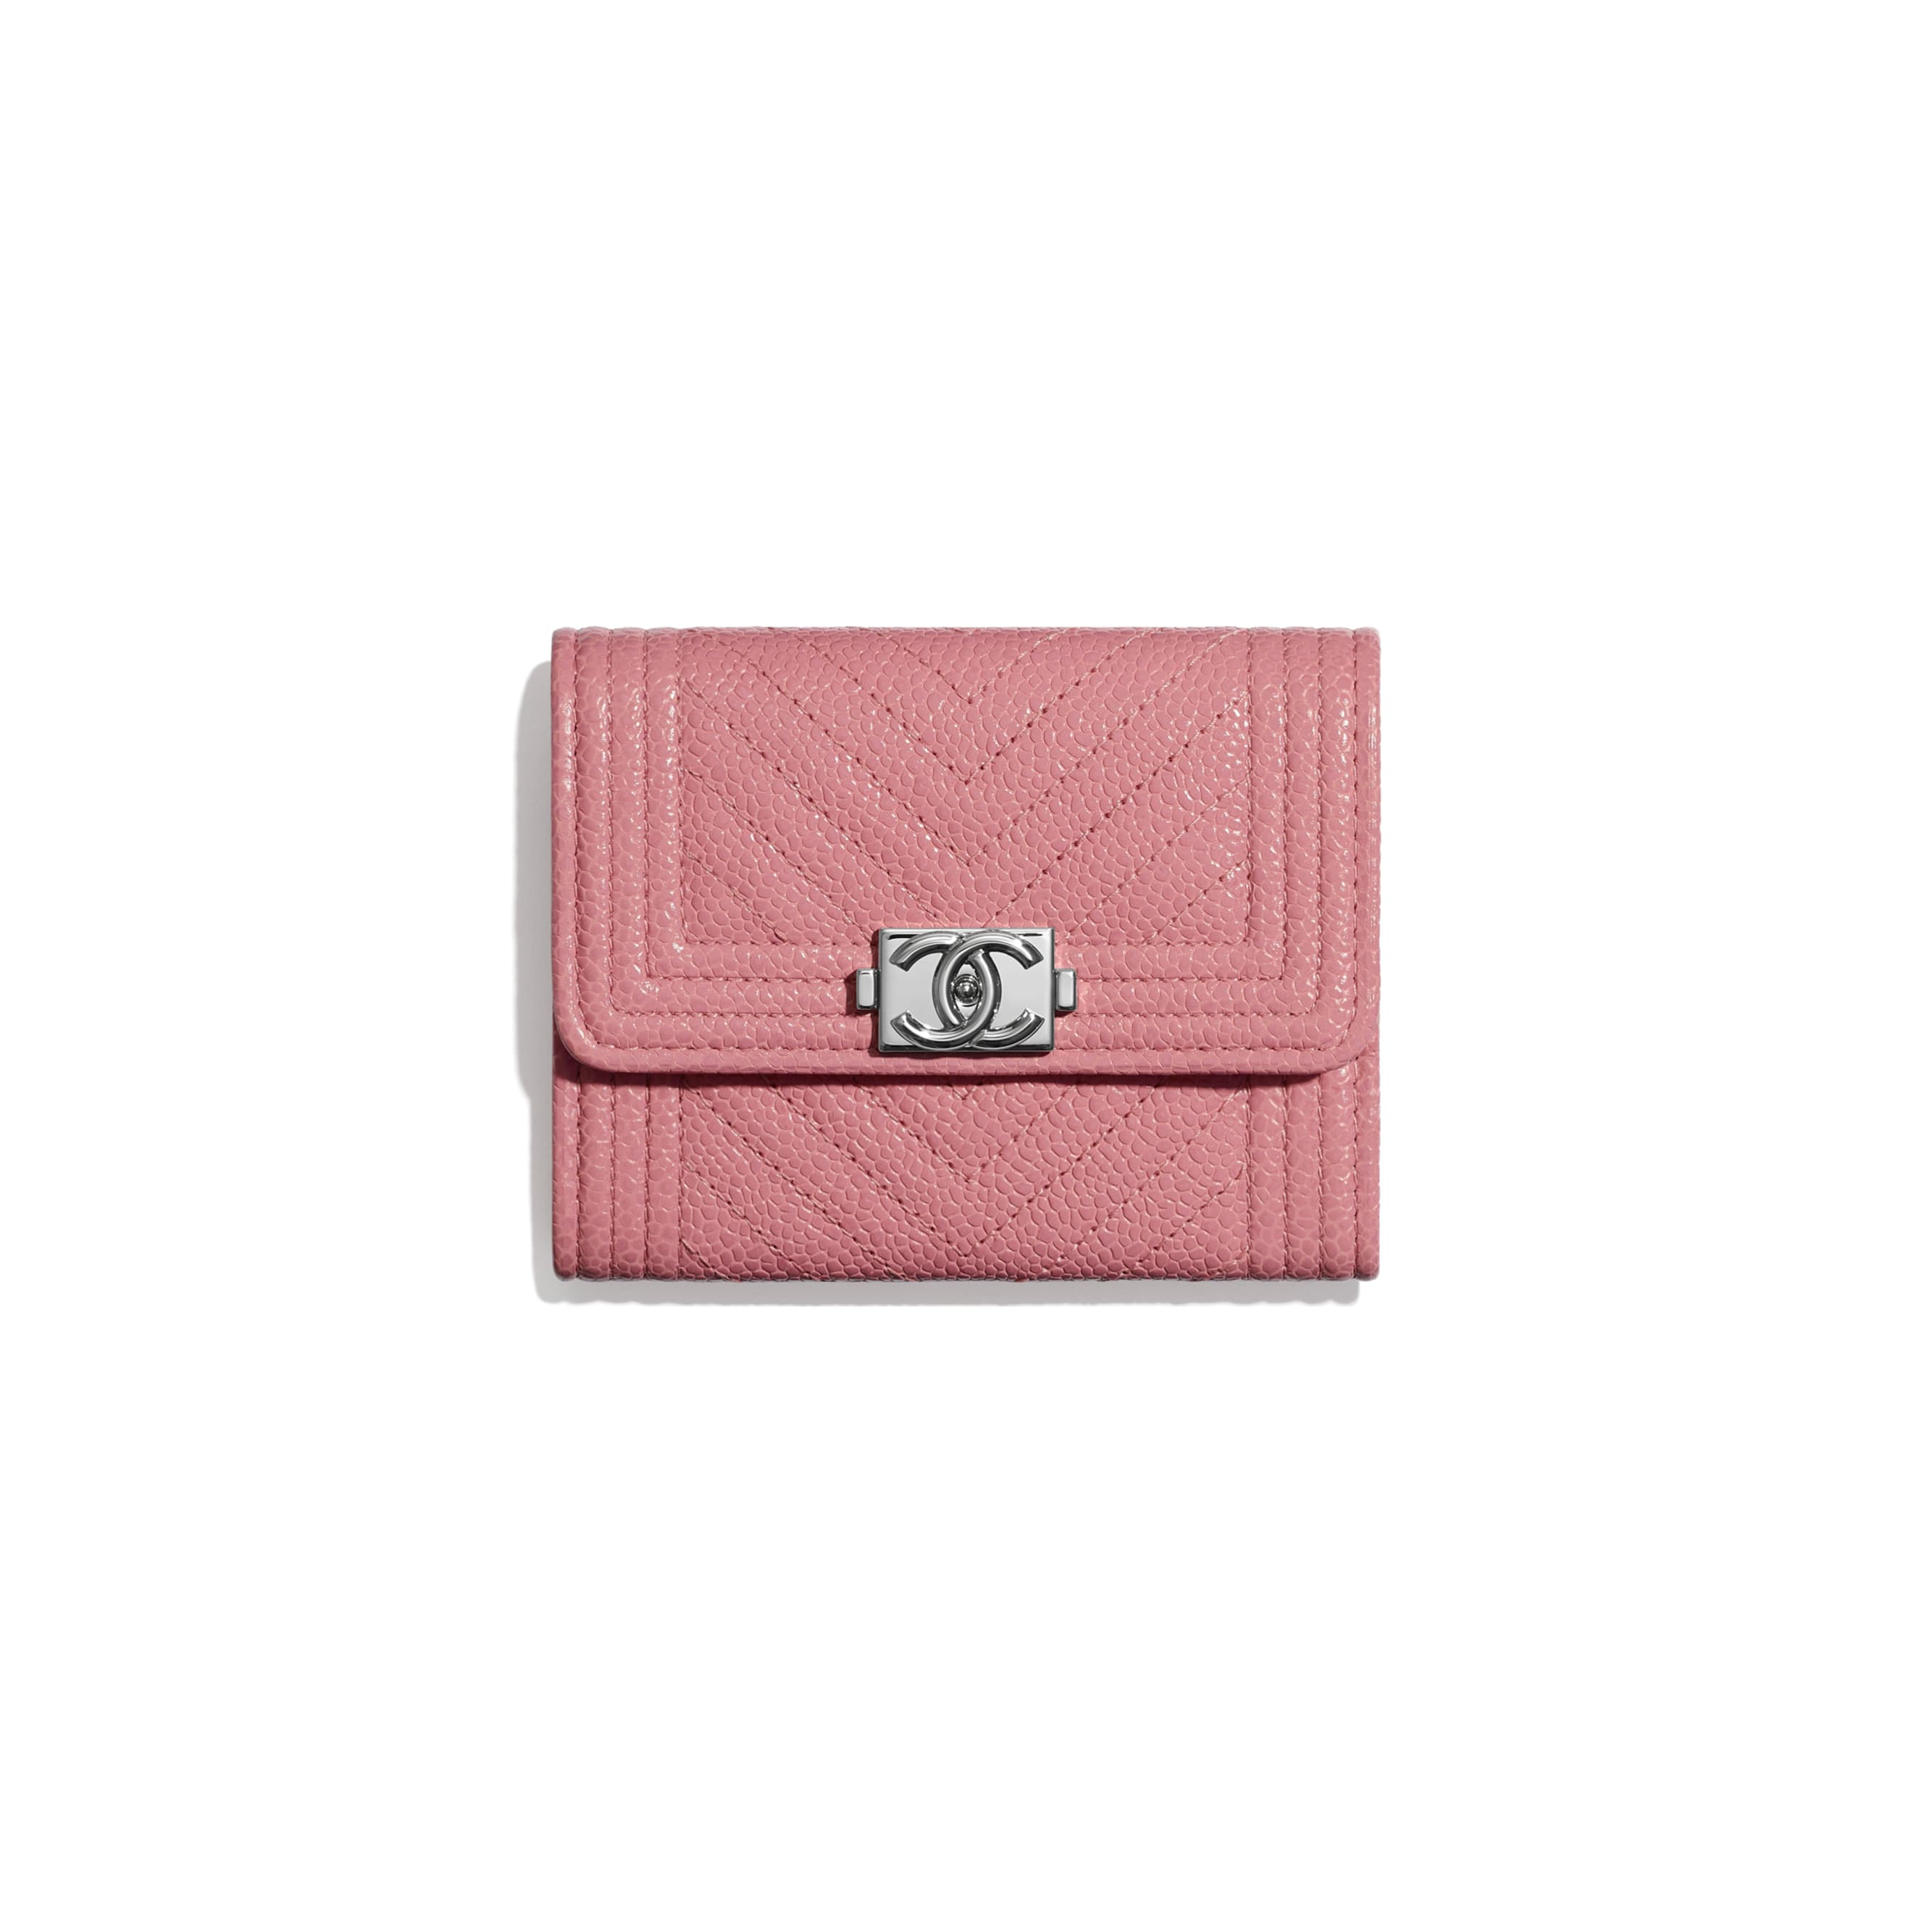 BOY CHANEL Flap Coin Purse - Pink - Shiny Grained Calfskin & Silver-Tone Metal - Default view - see standard sized version